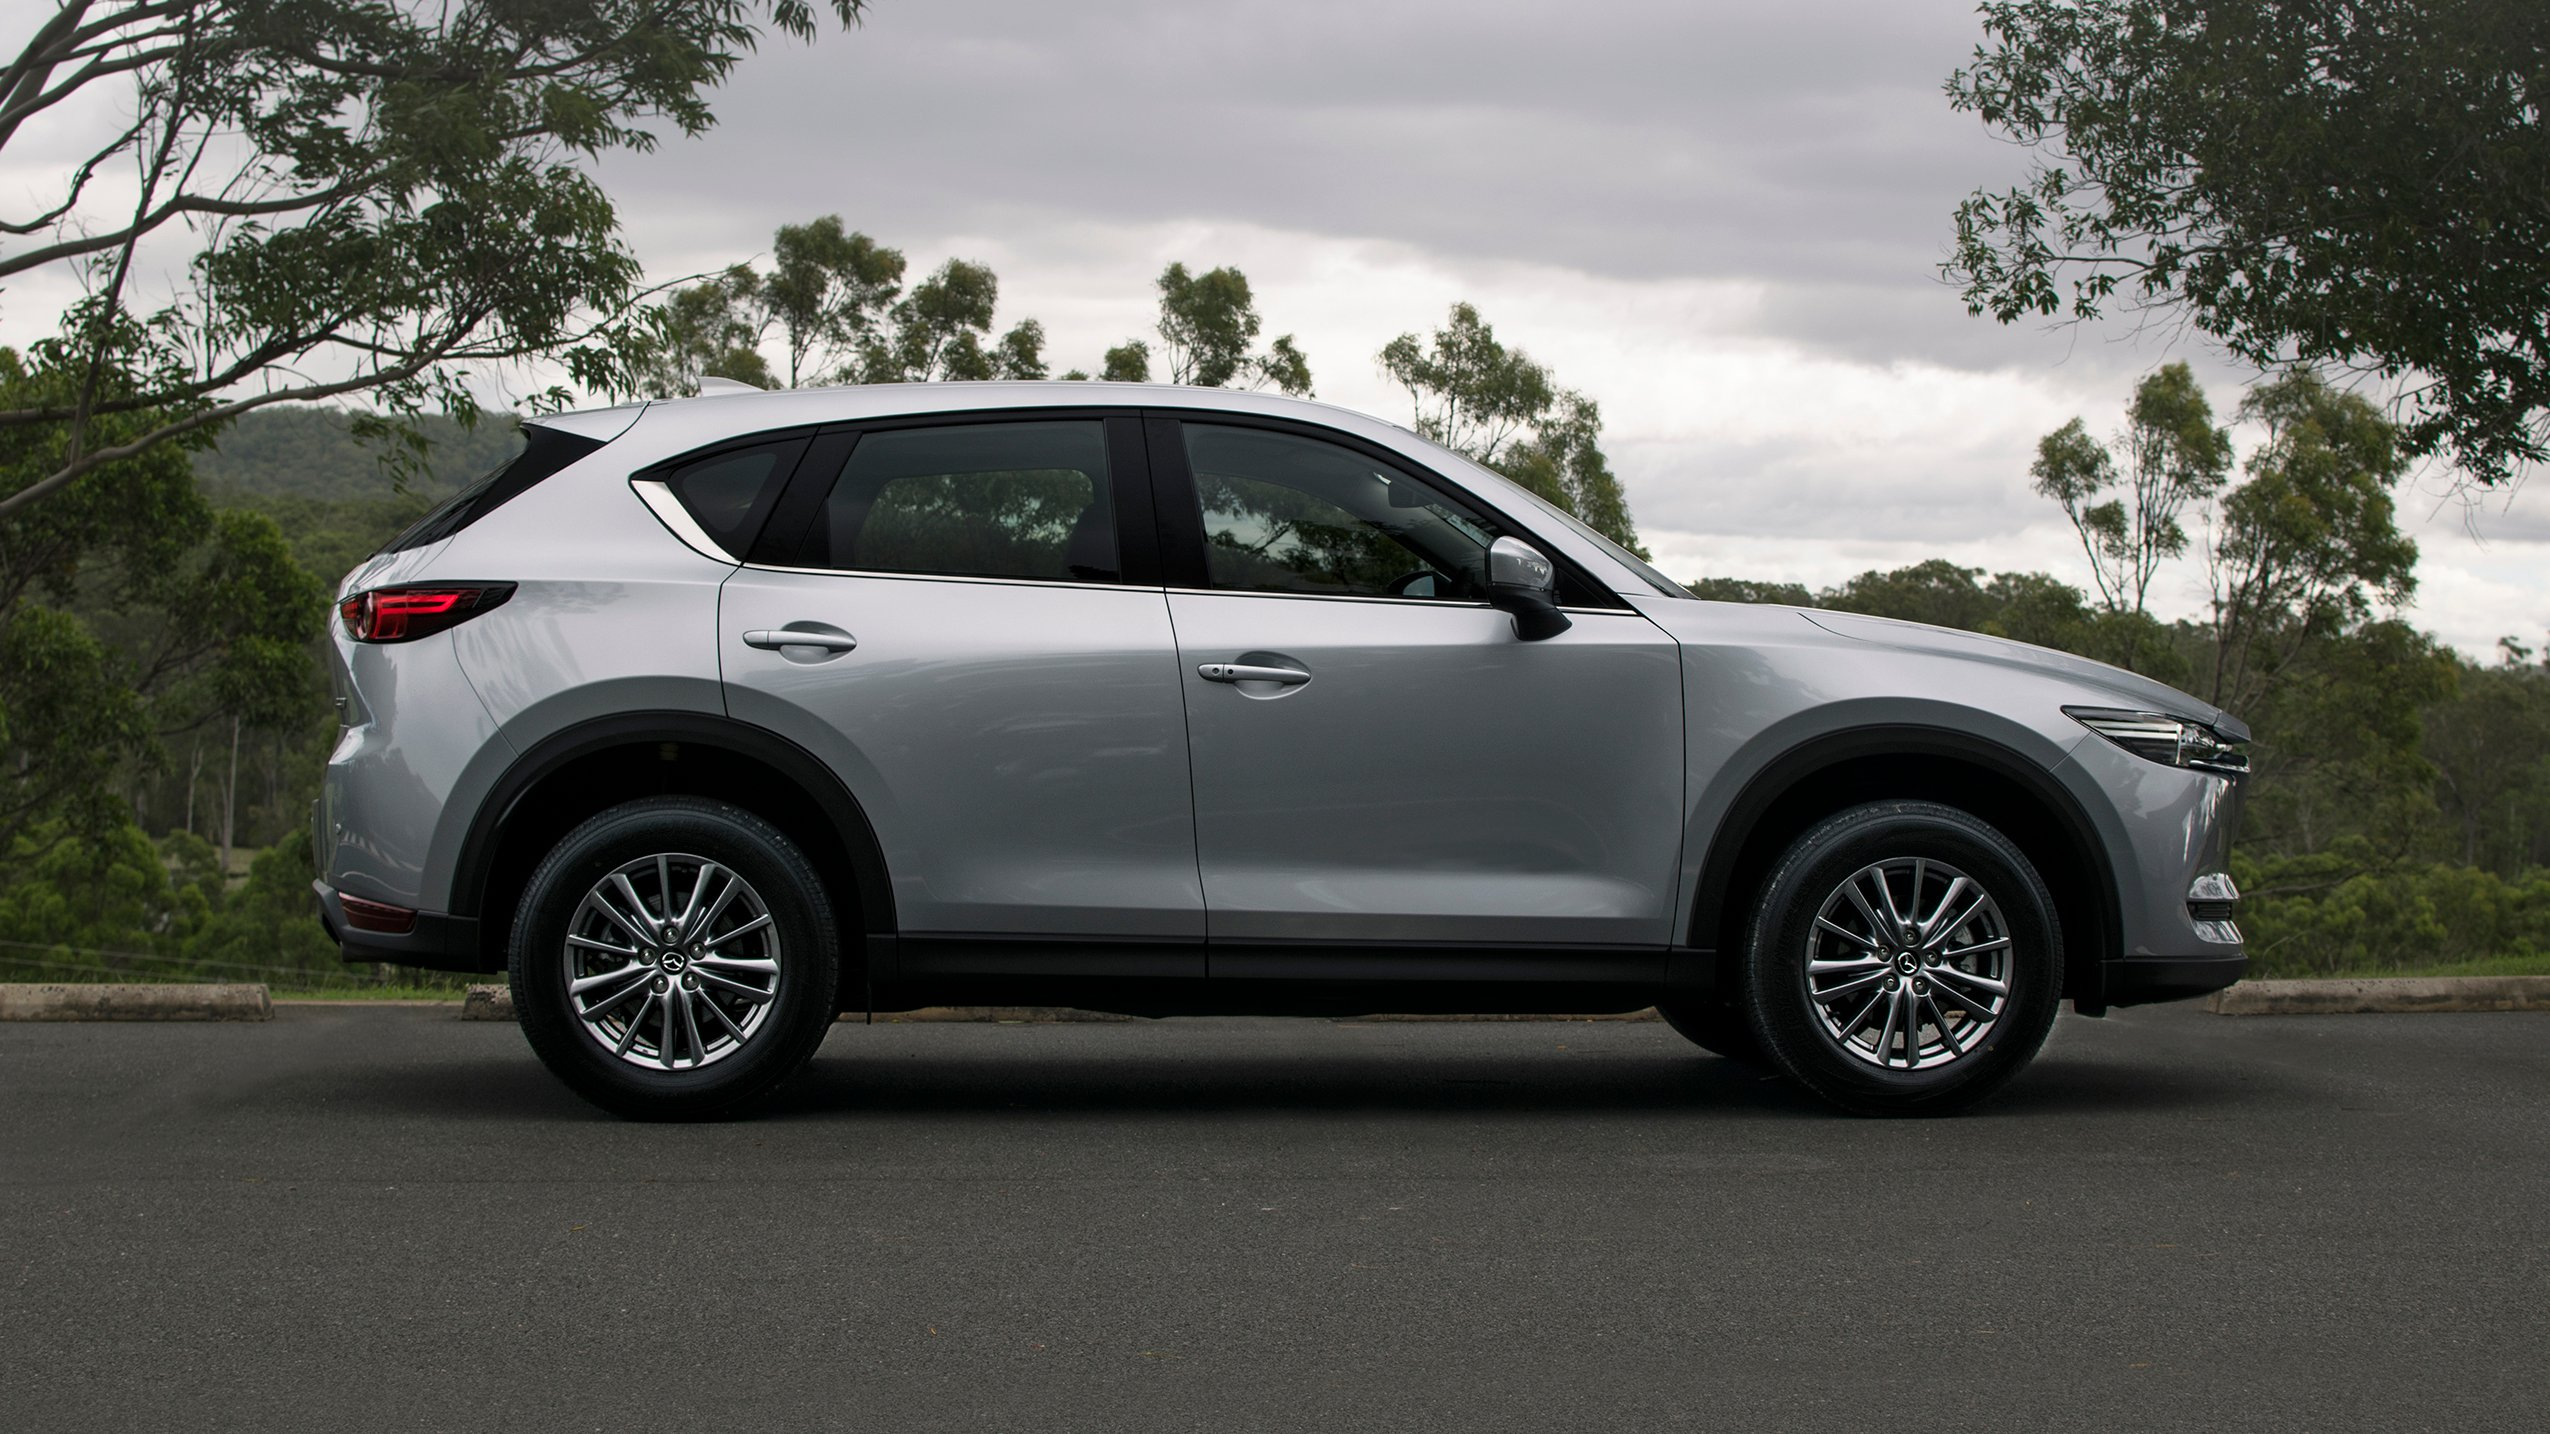 2017 mazda cx 5 touring petrol review photos caradvice. Black Bedroom Furniture Sets. Home Design Ideas